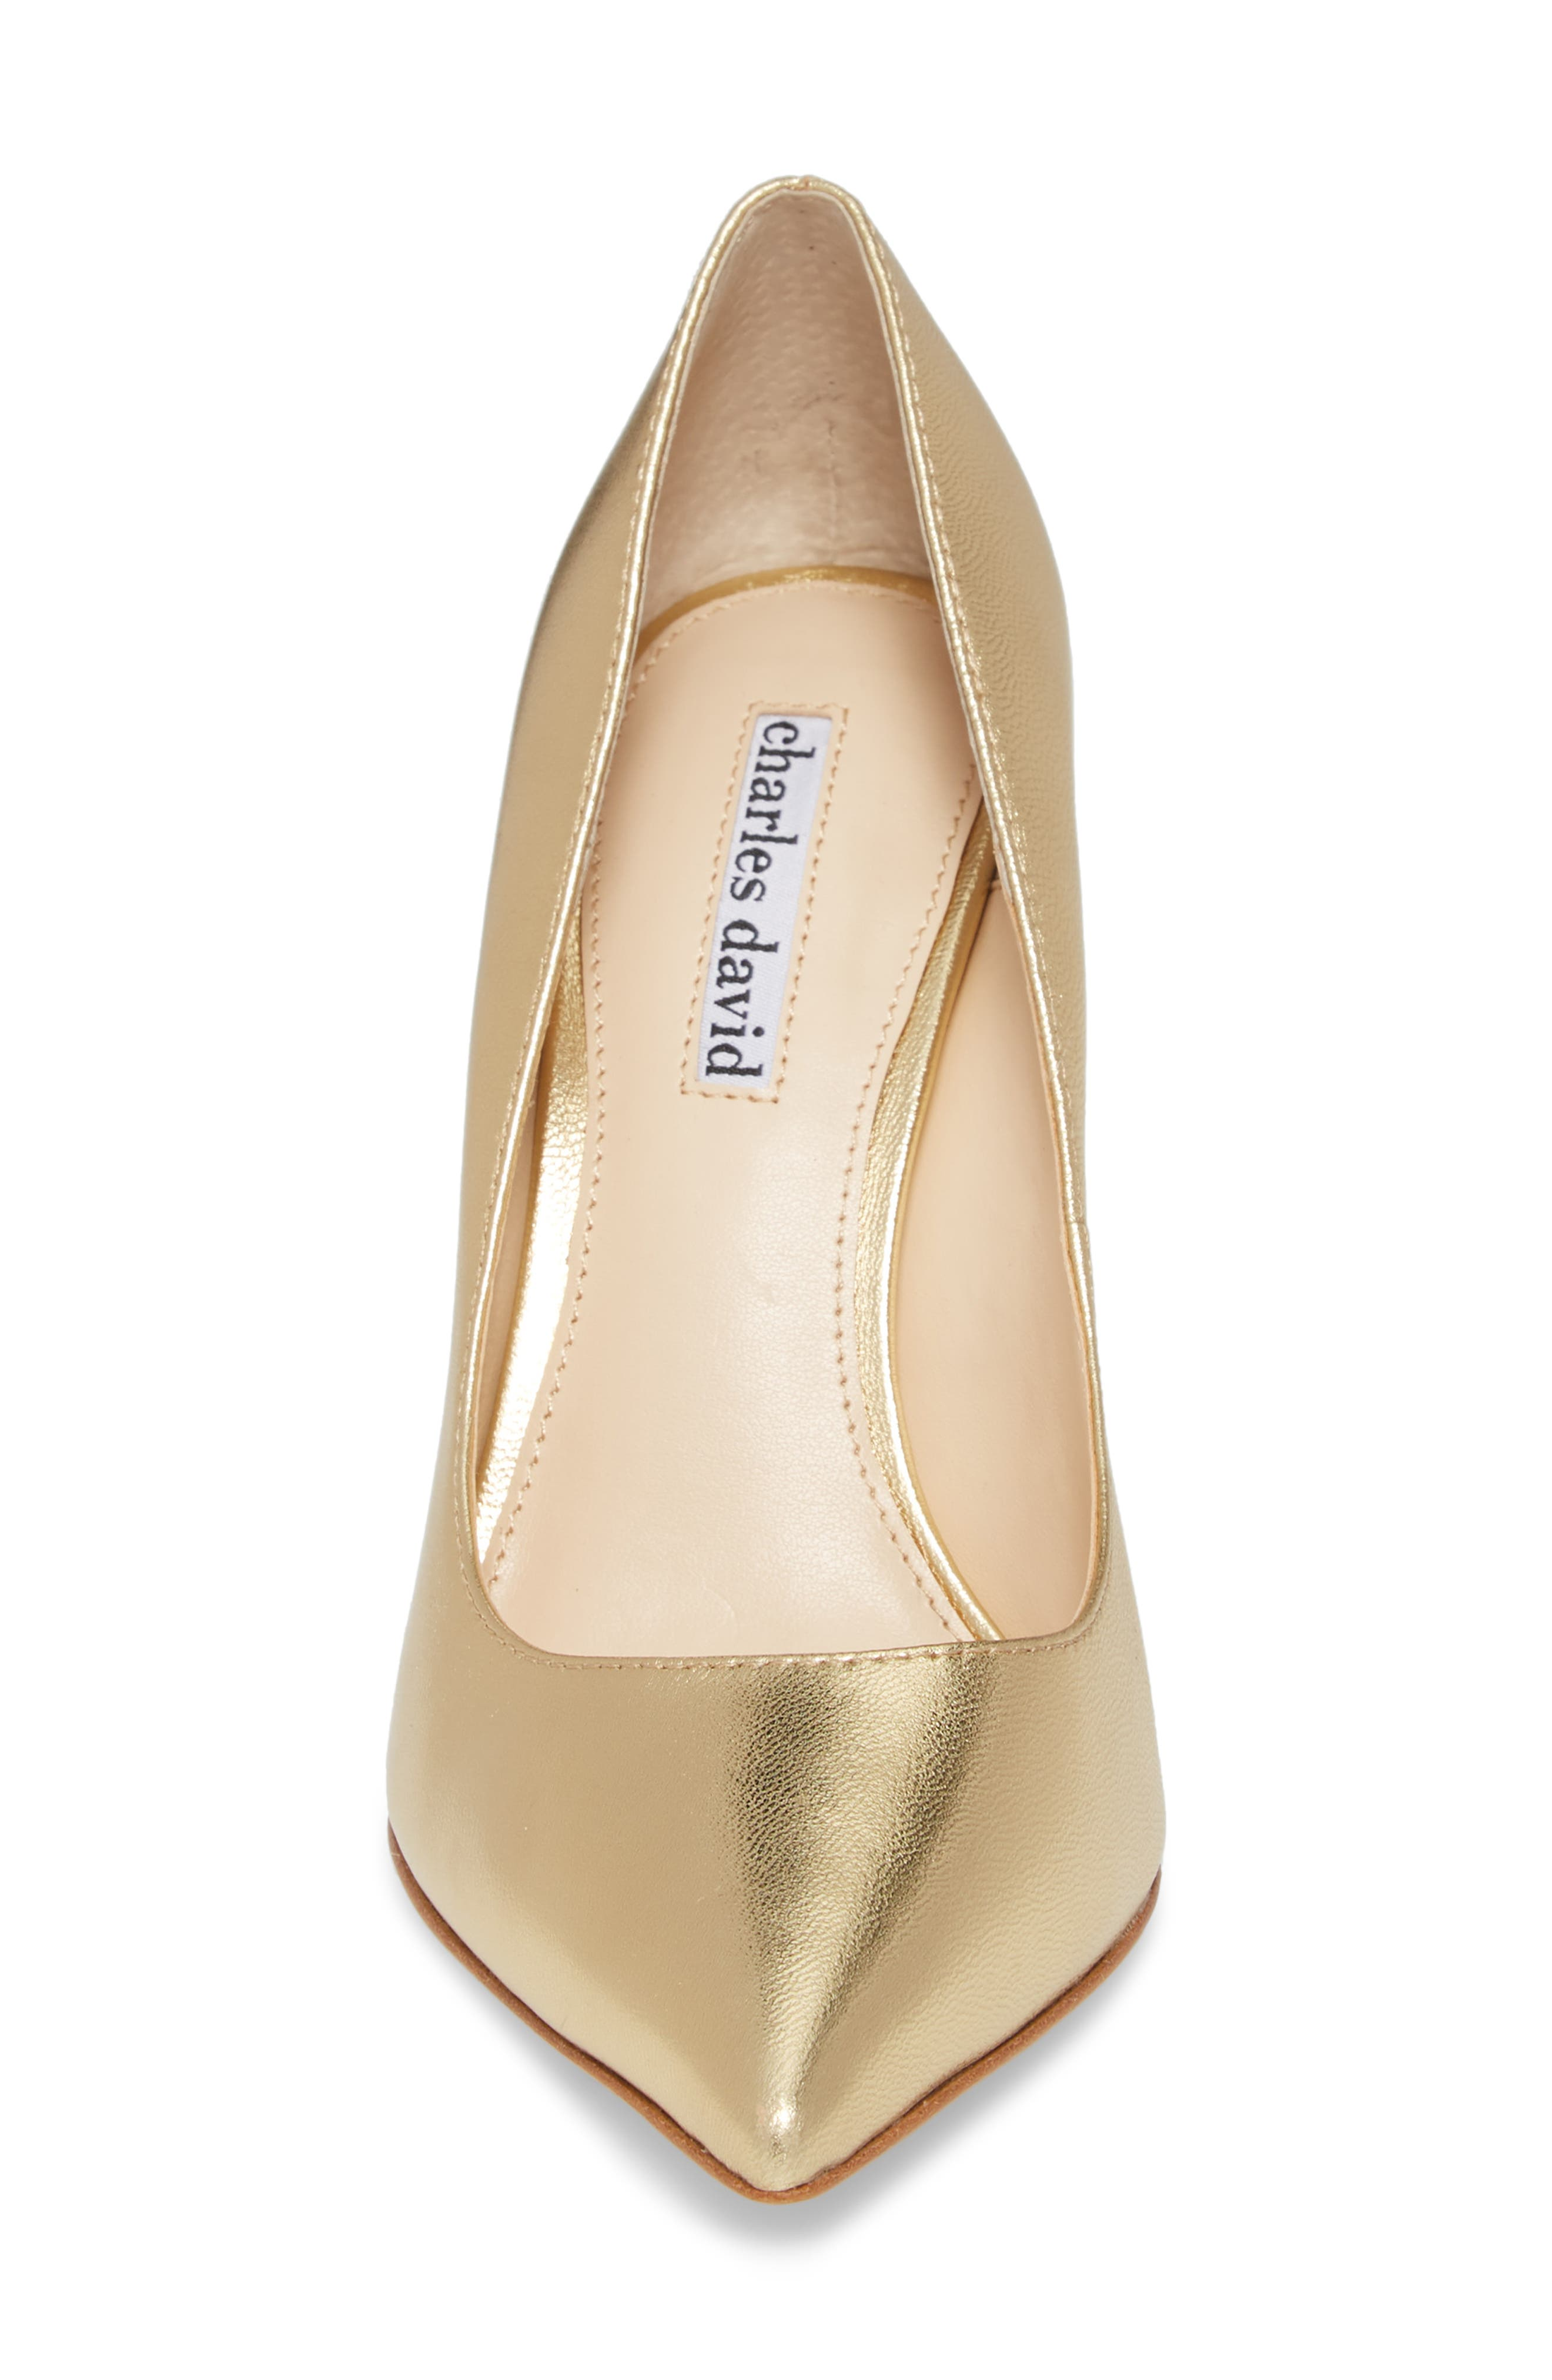 Calessi Pointy Toe Pump,                             Alternate thumbnail 4, color,                             GOLD LEATHER